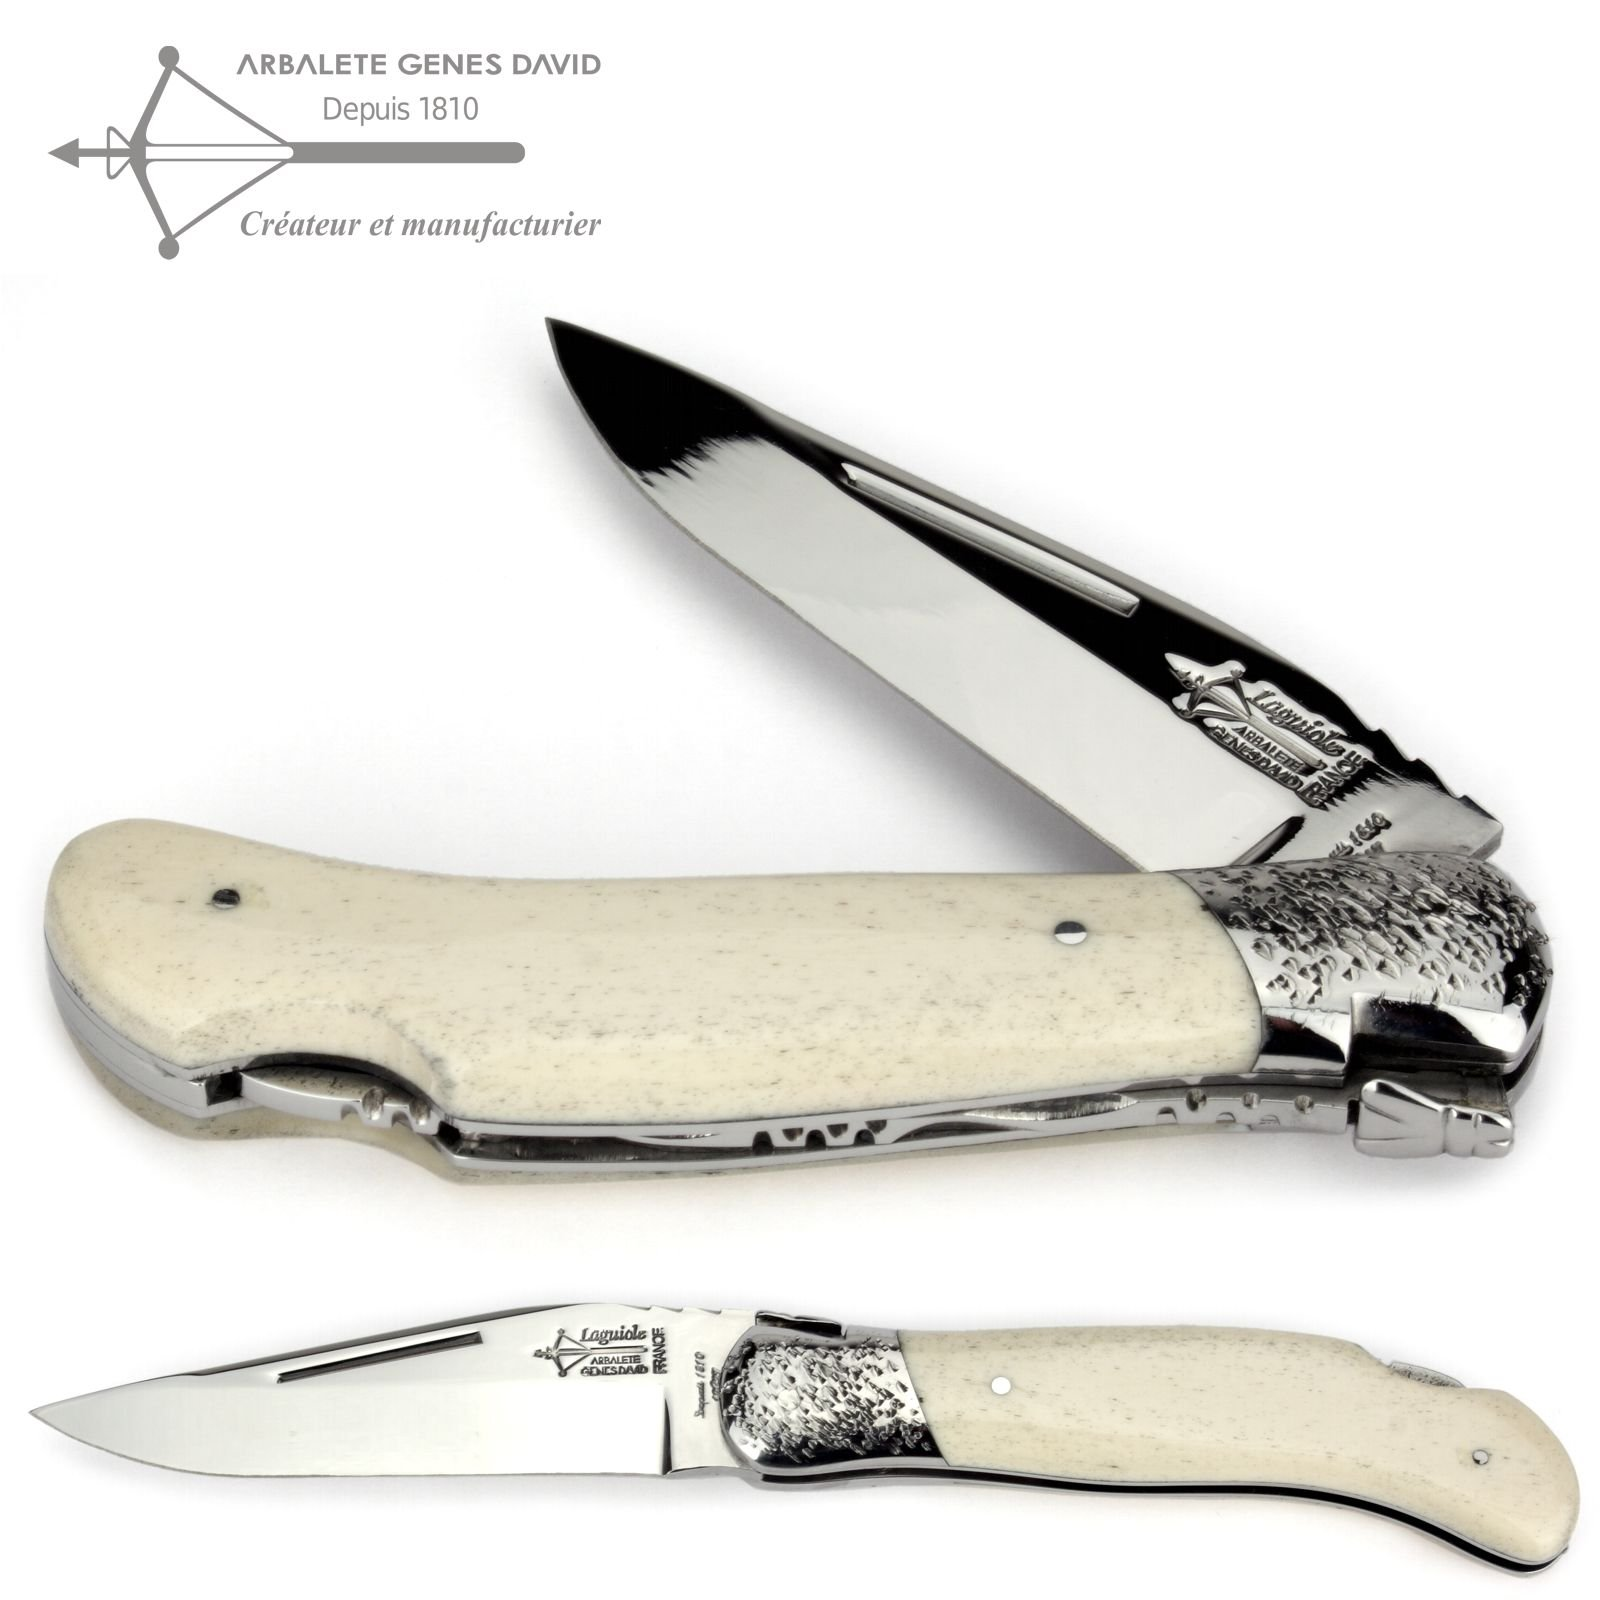 Laguiole Arbalete G. David - french handmade hunting folding knife 12 cm - cattle bone handle - hammered bolsters - blade stainless steel shiny by Arbalète Genès David